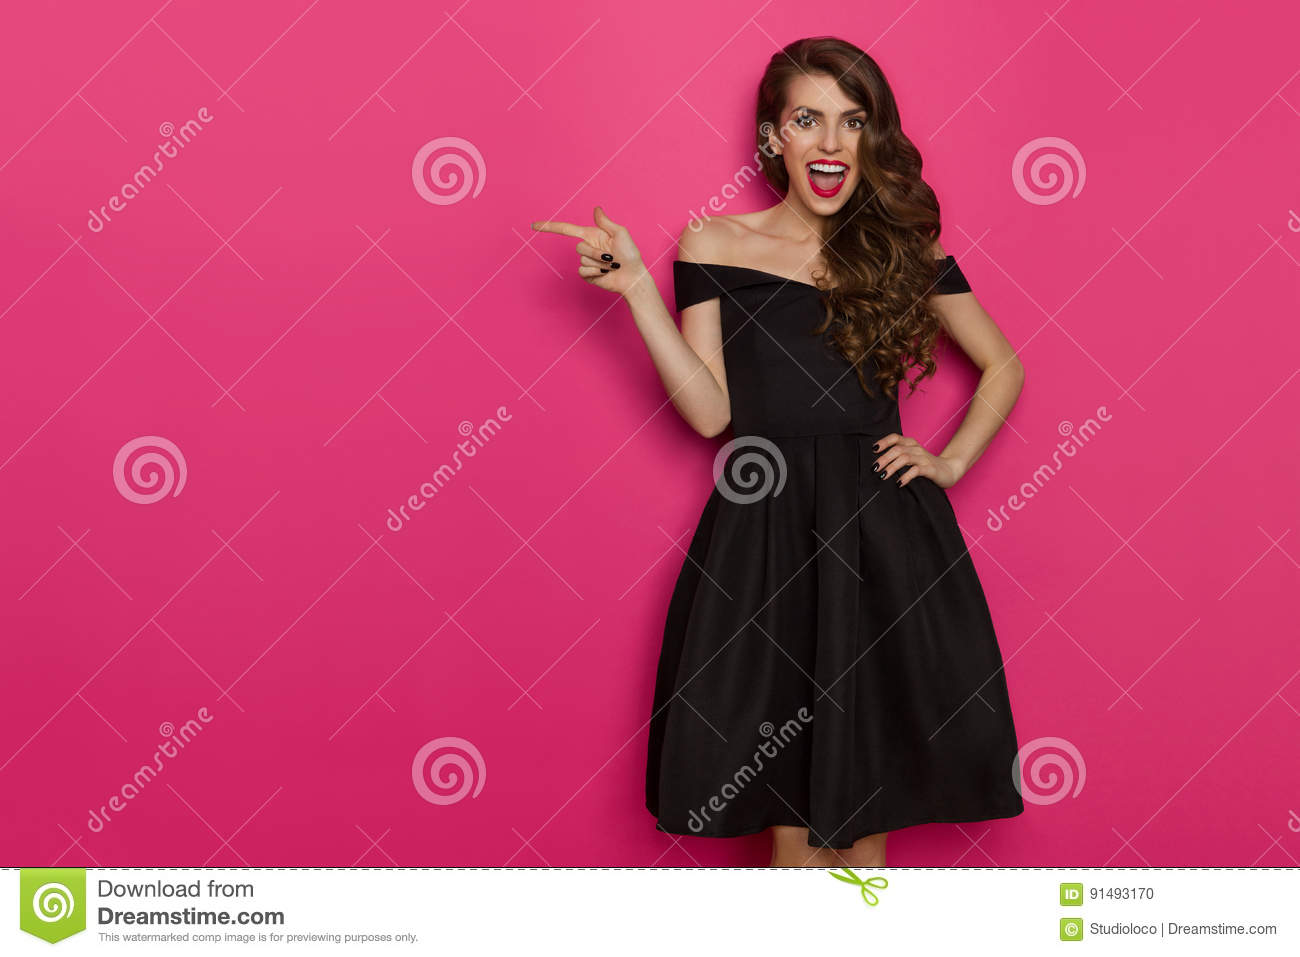 Vestido Negro Simple Stock Images - Download 825 Photos